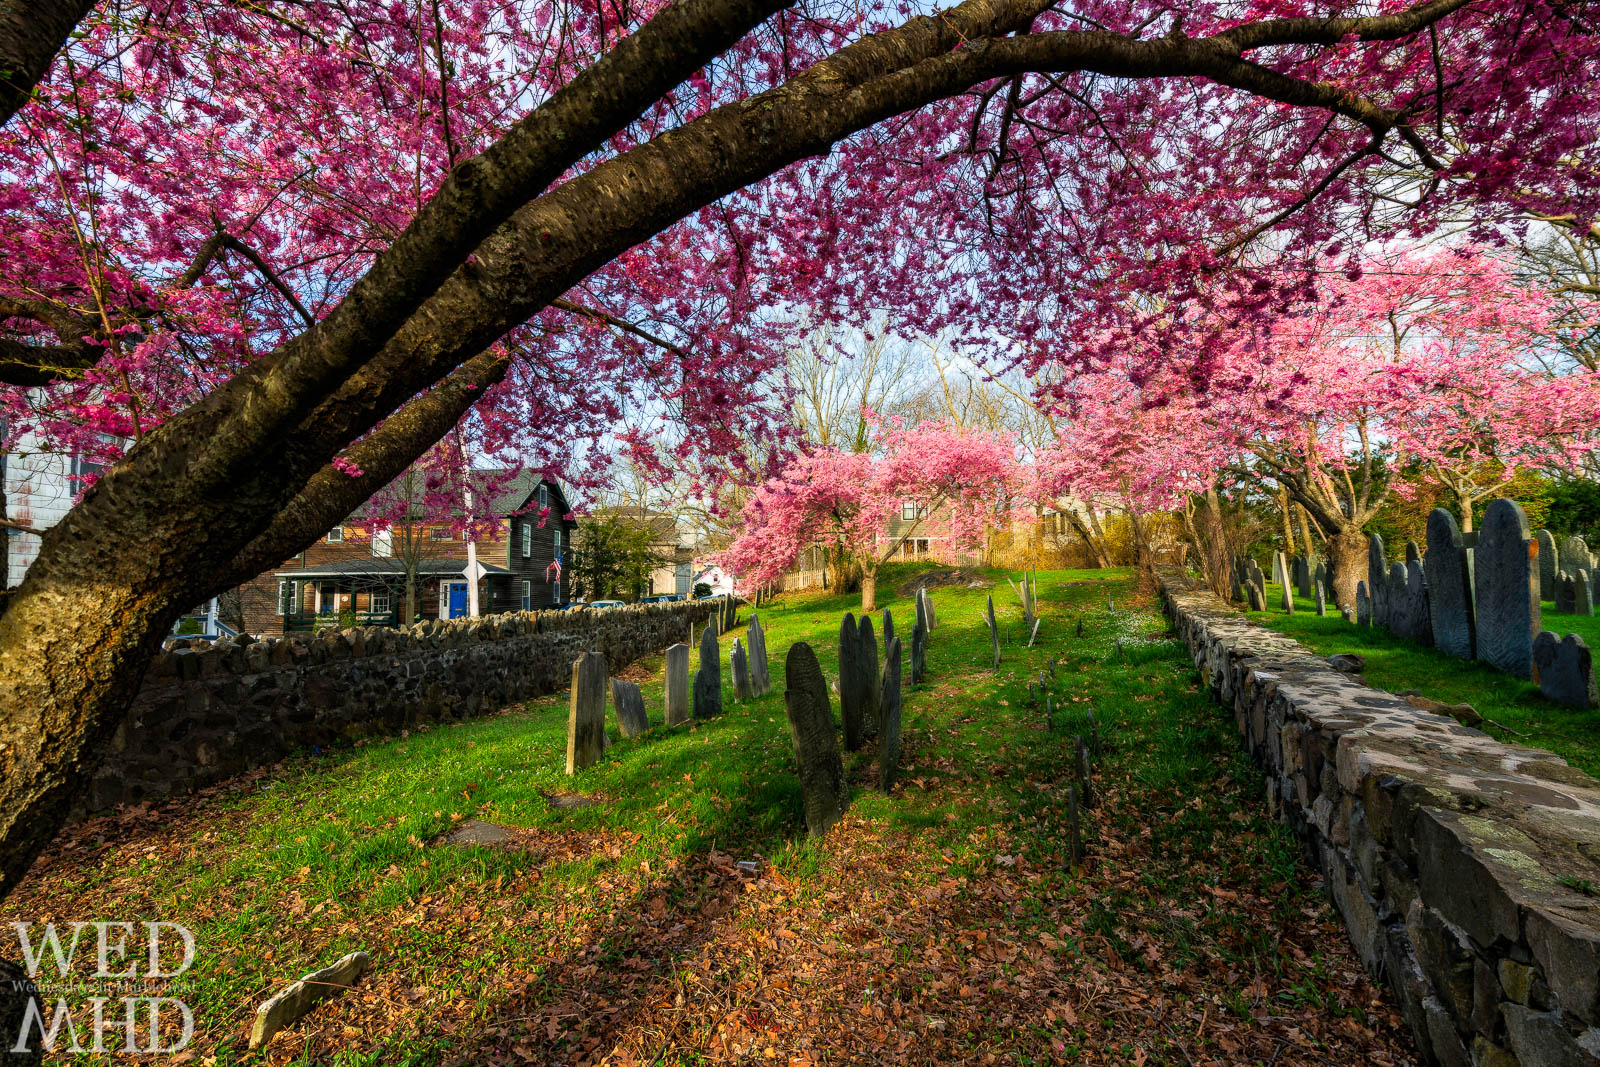 The Harris Street cemetery cherry blossoms are captured at peak bloom on this late April morning with the sun illuminating the delicate pink flowers